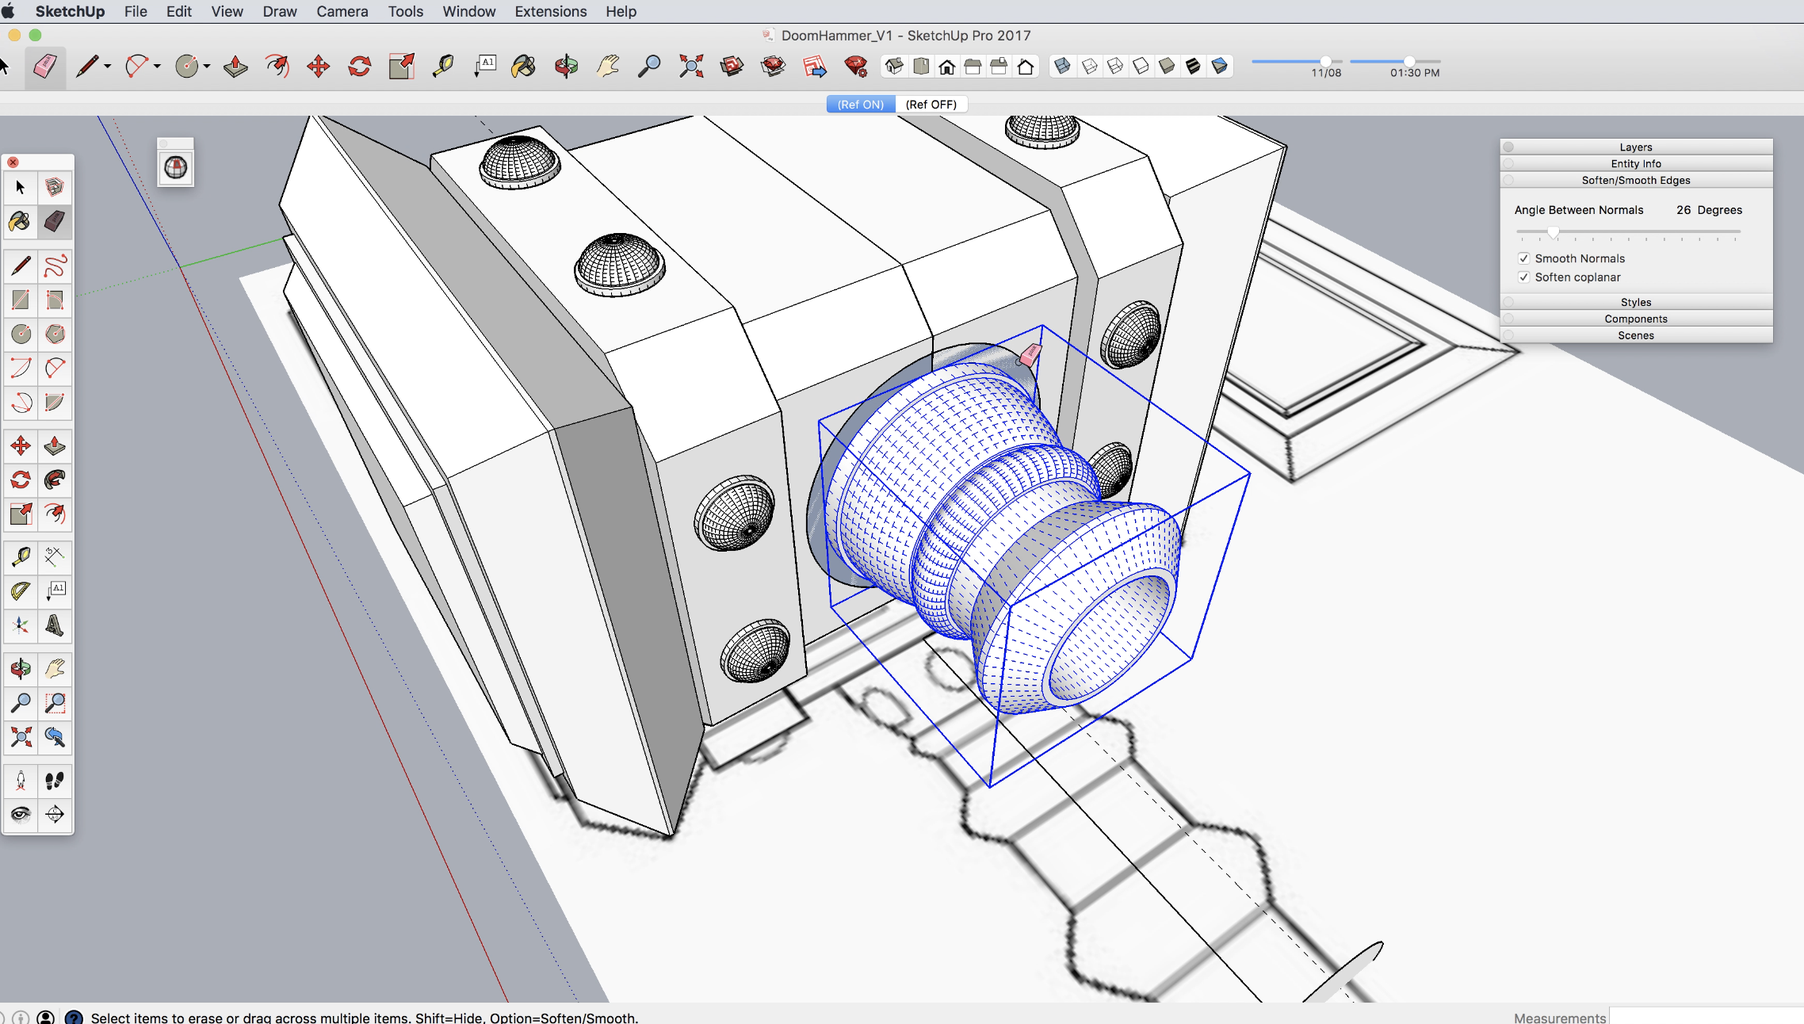 3D Modeling and 3D Printing